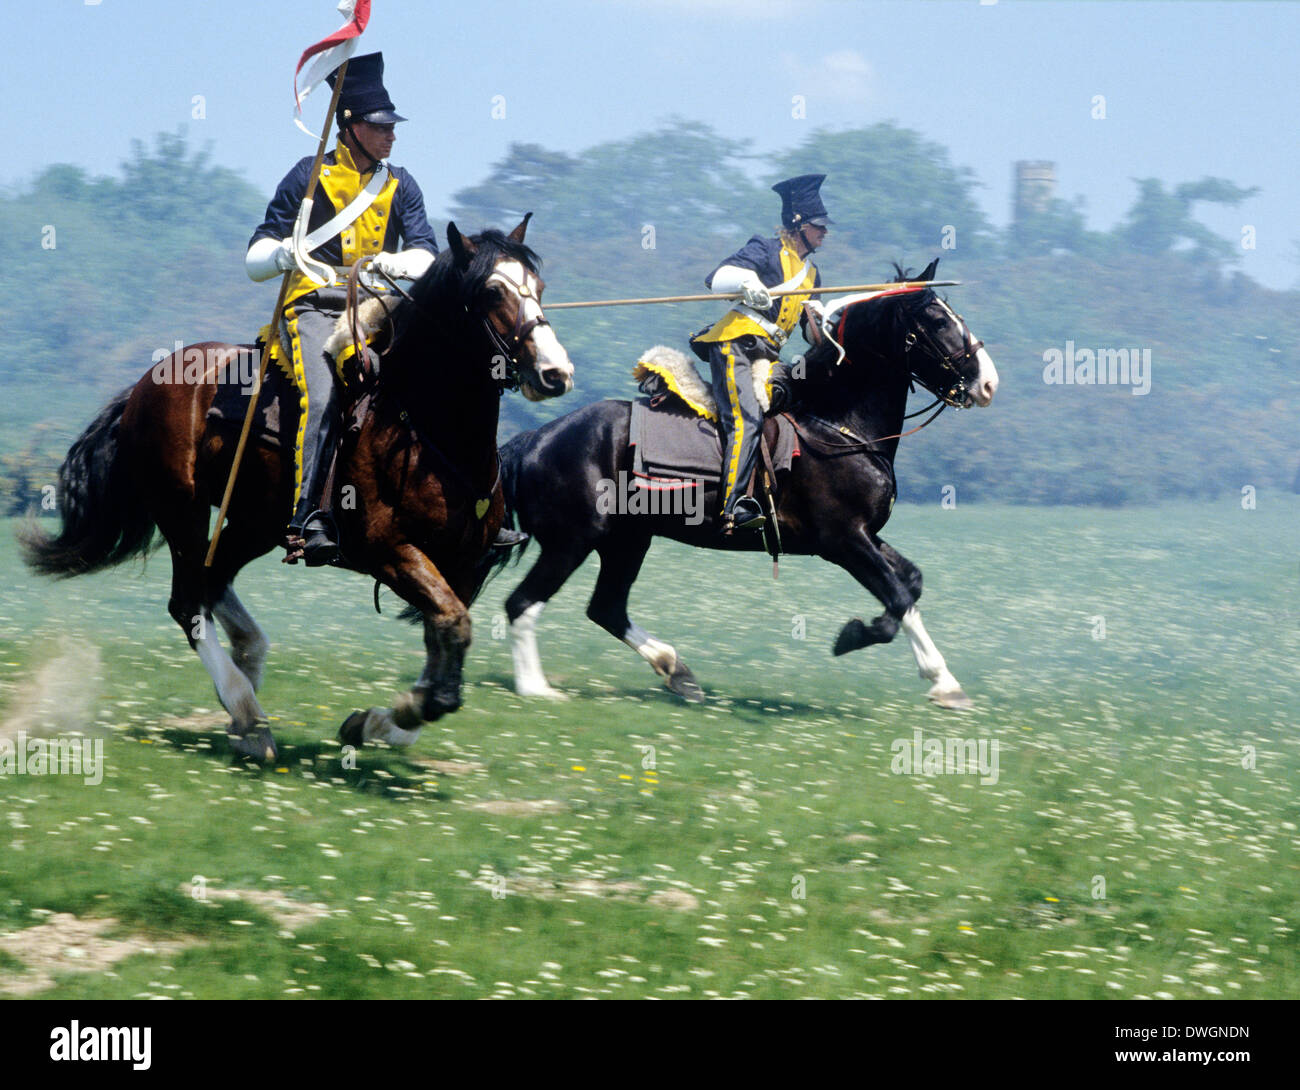 French Napoleonic cavalry, 1815, as deployed at Battle of Waterloo, Chasseurs, historical re-enactment, horses Stock Photo